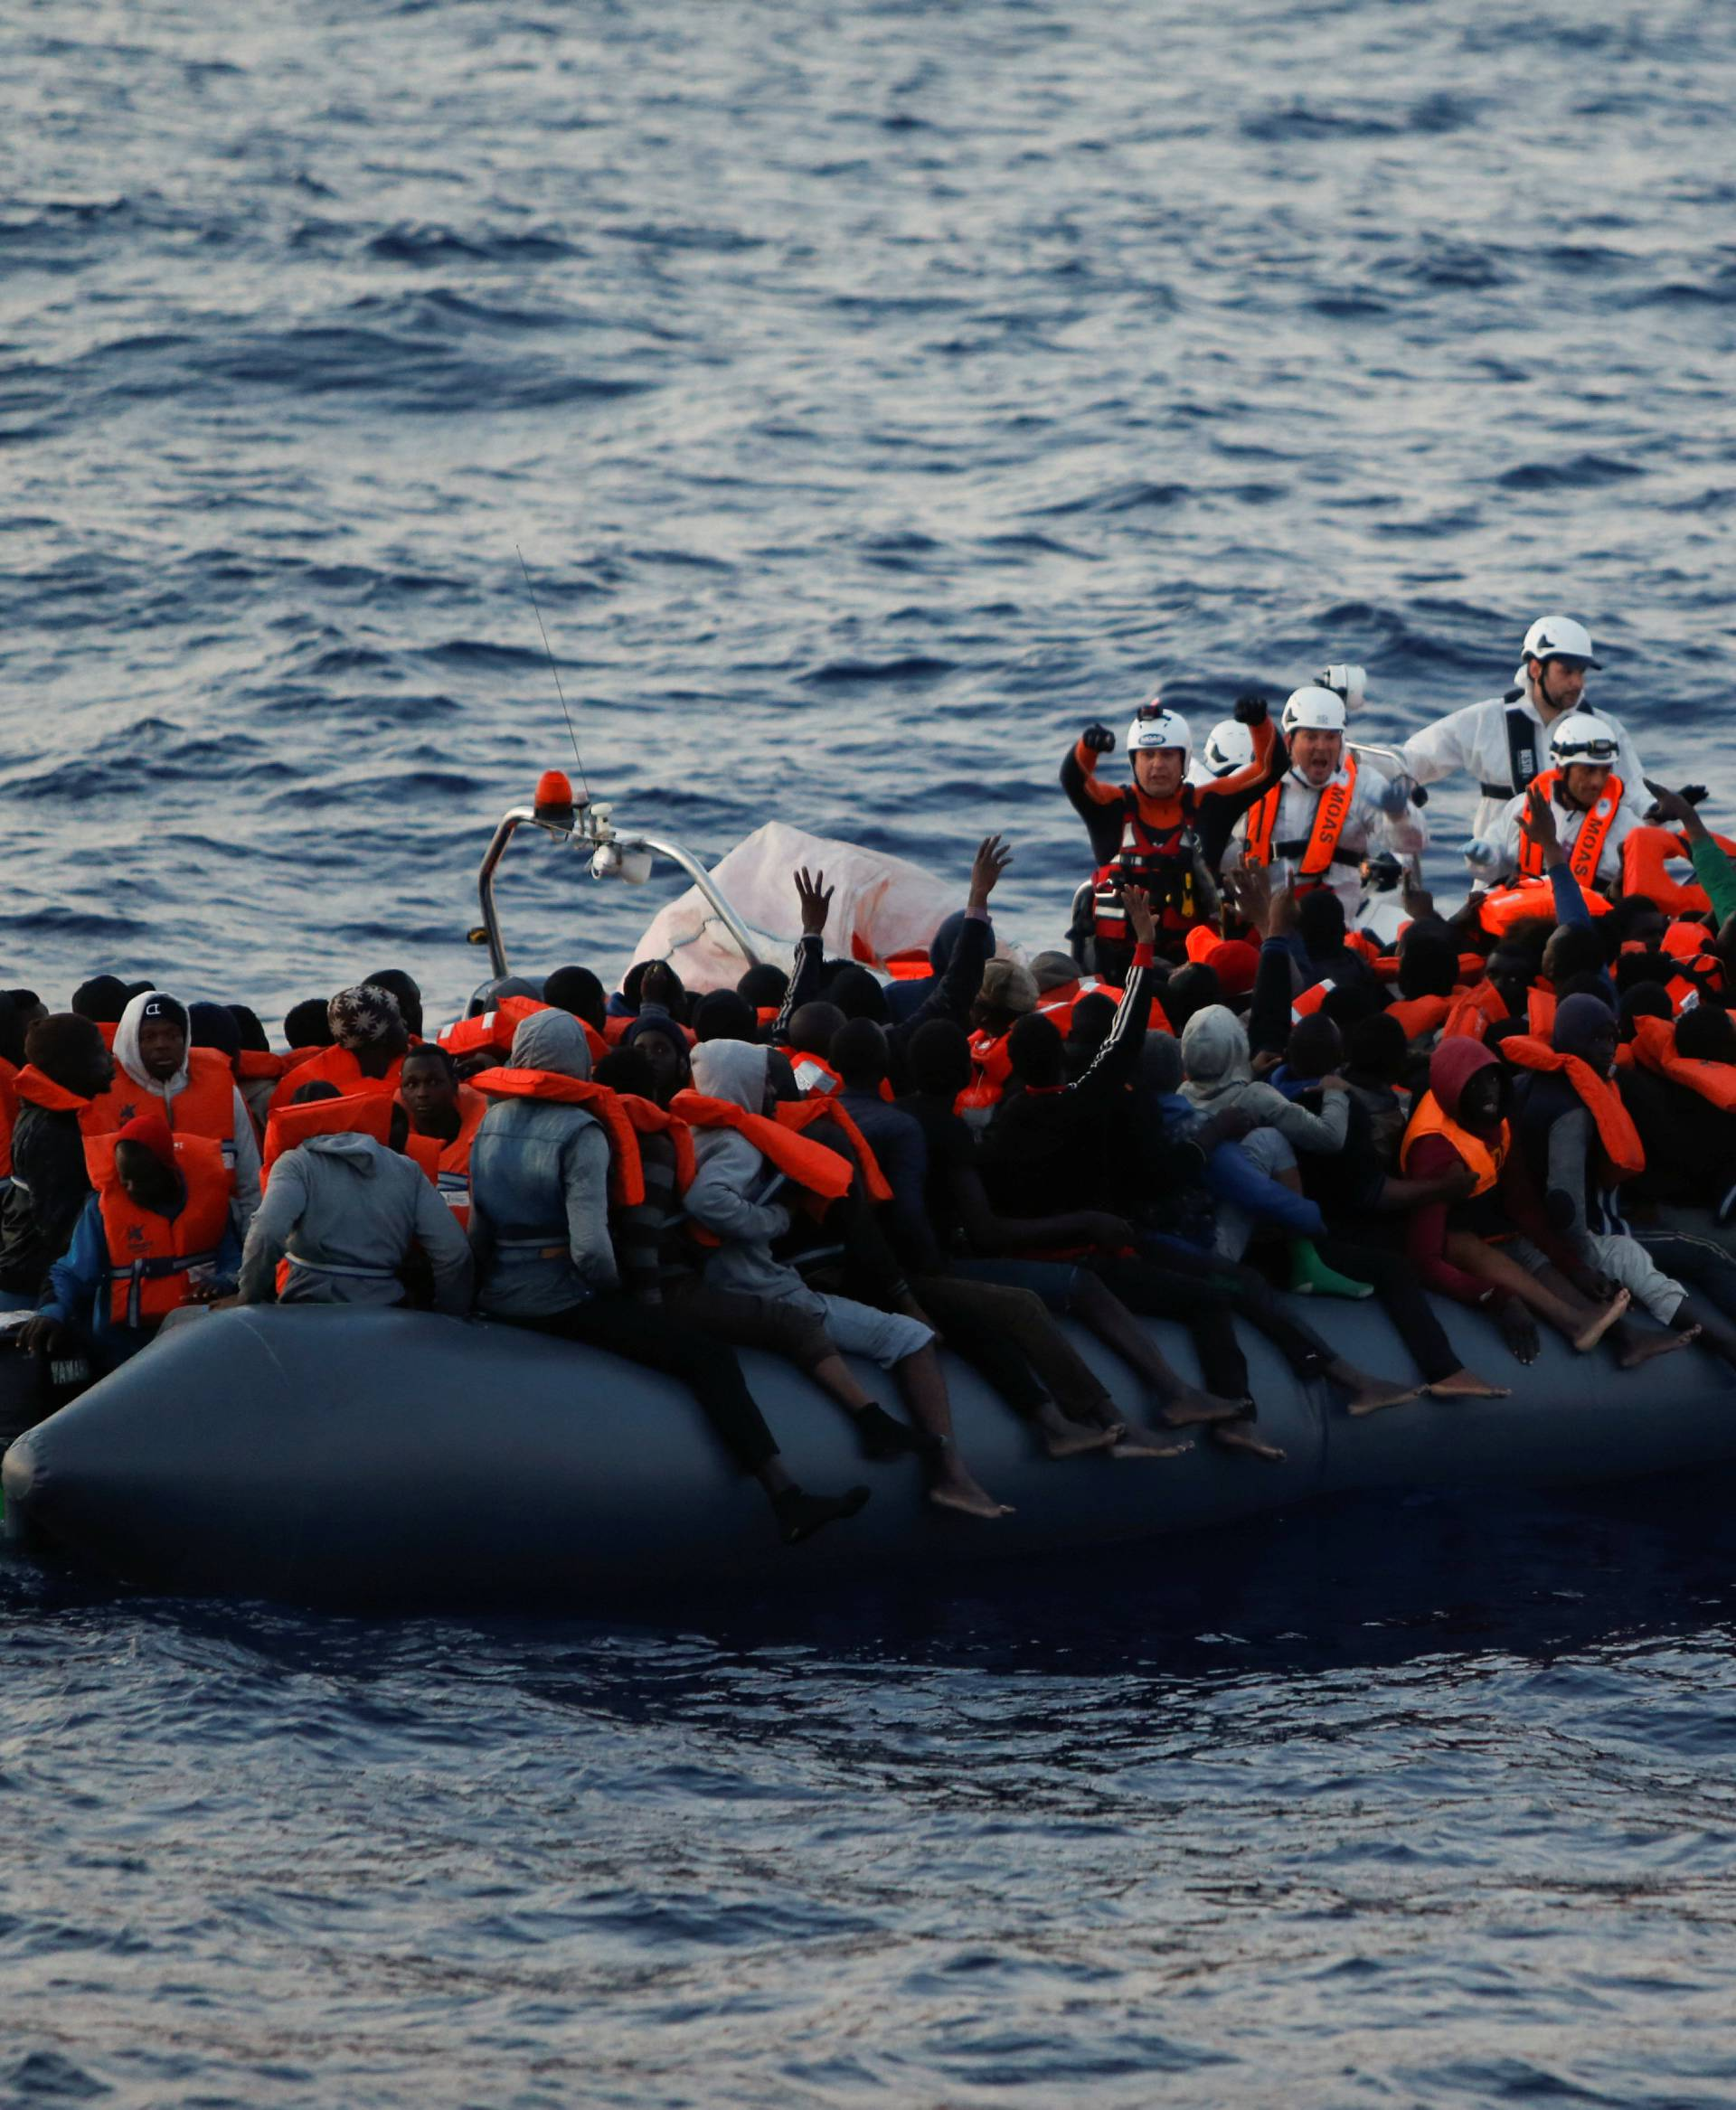 Rescuers of MOAS hand out life jackets to migrants on board a rubber dinghy in the central Mediterranean north of Sabratha on the Libyan coast